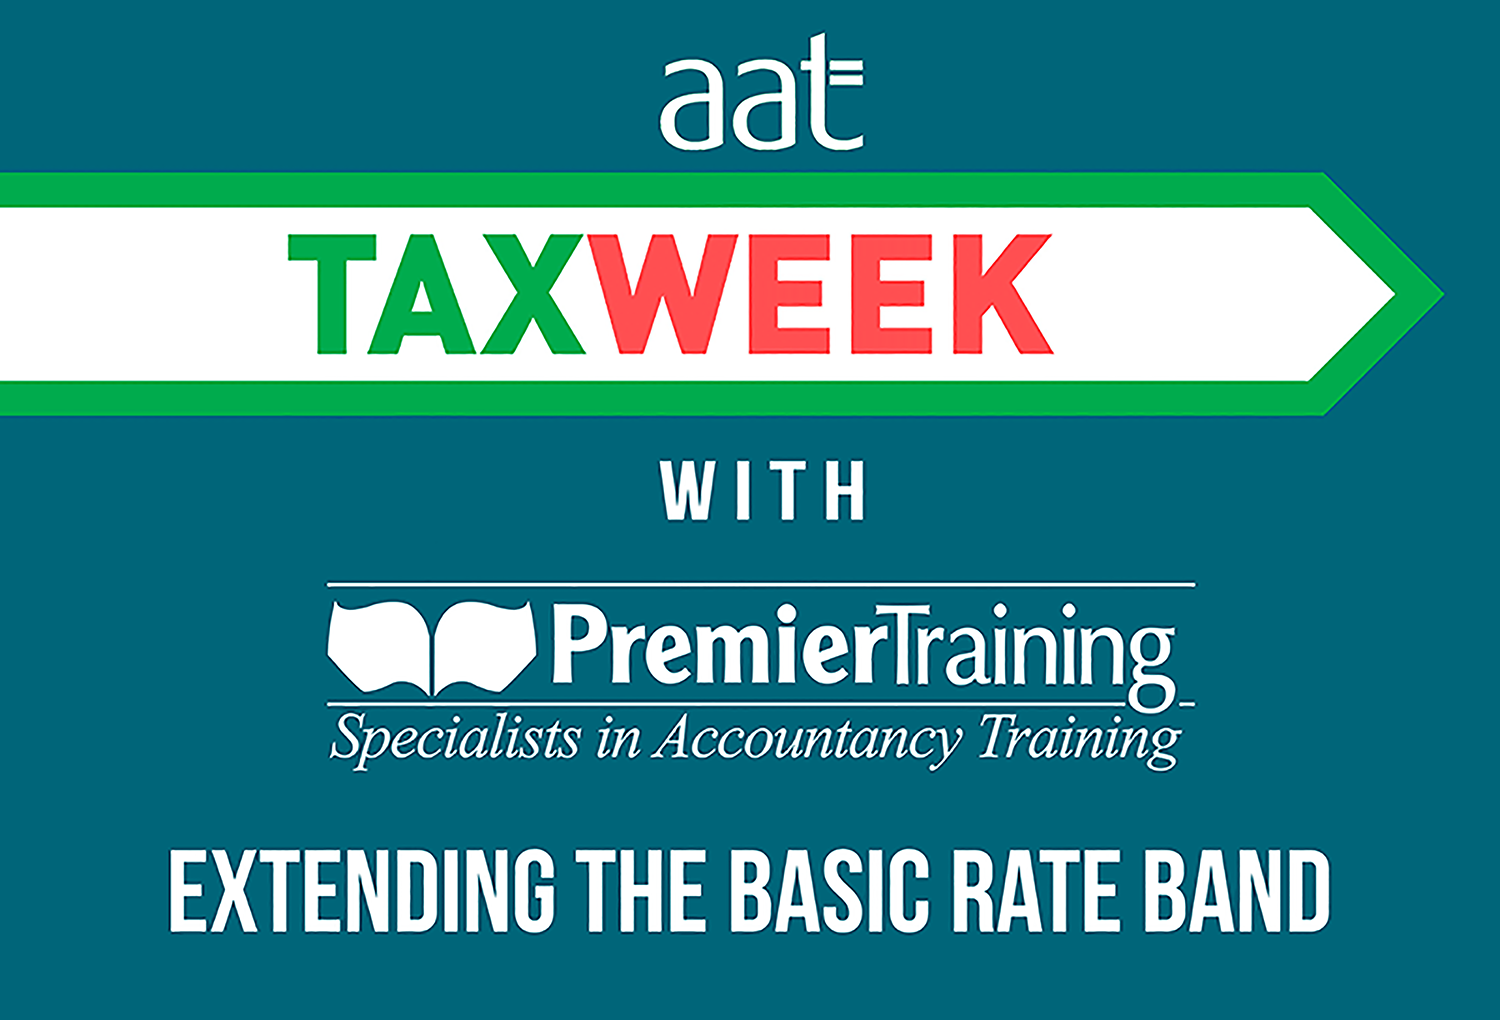 AAT Tax Week - Premier Training